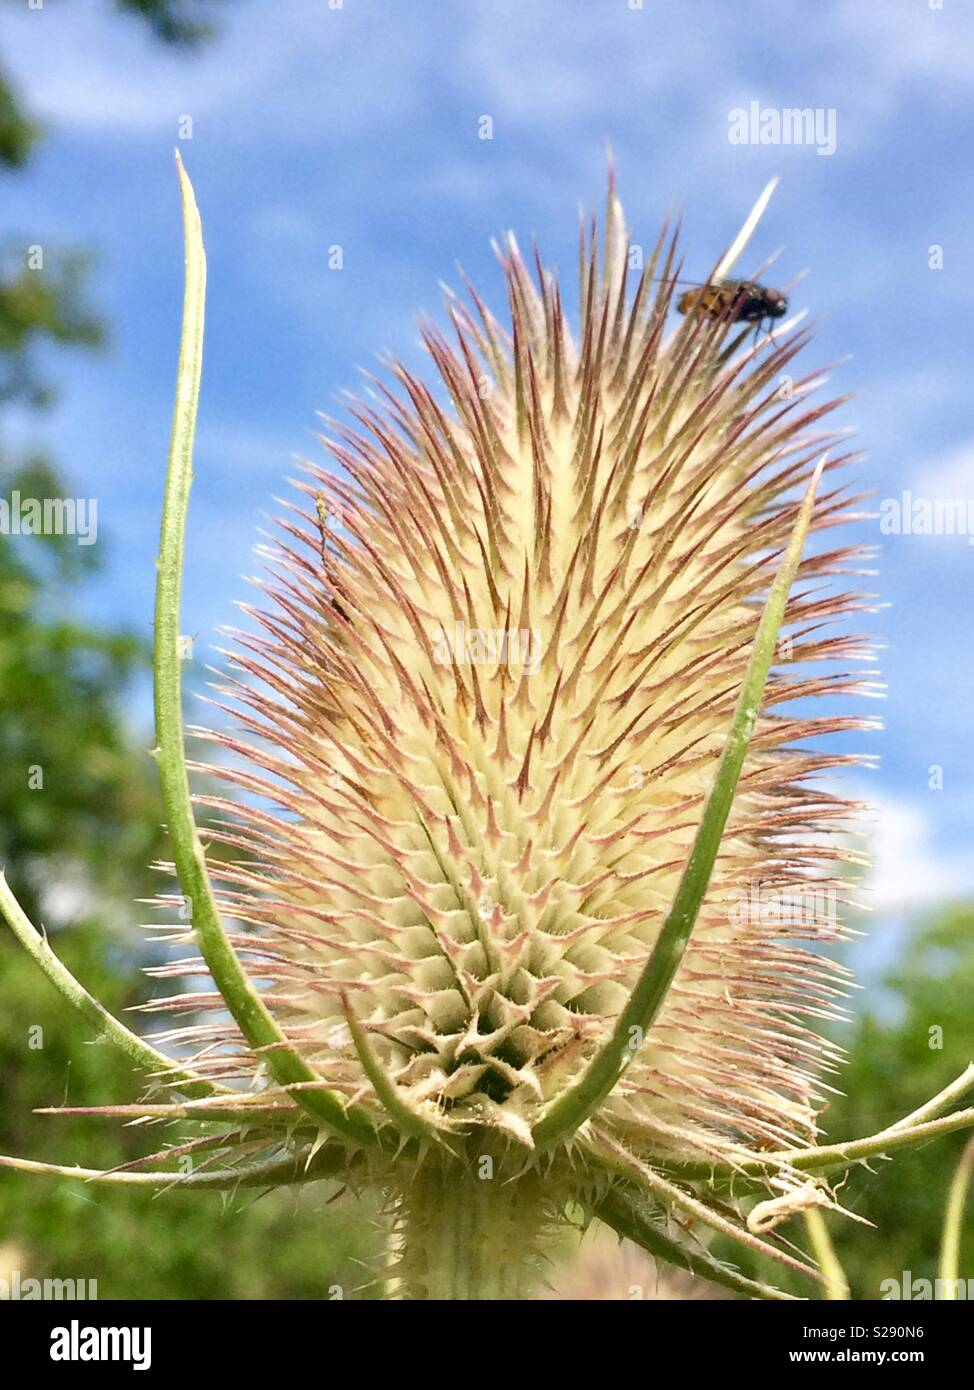 Fly on teasel - Stock Image